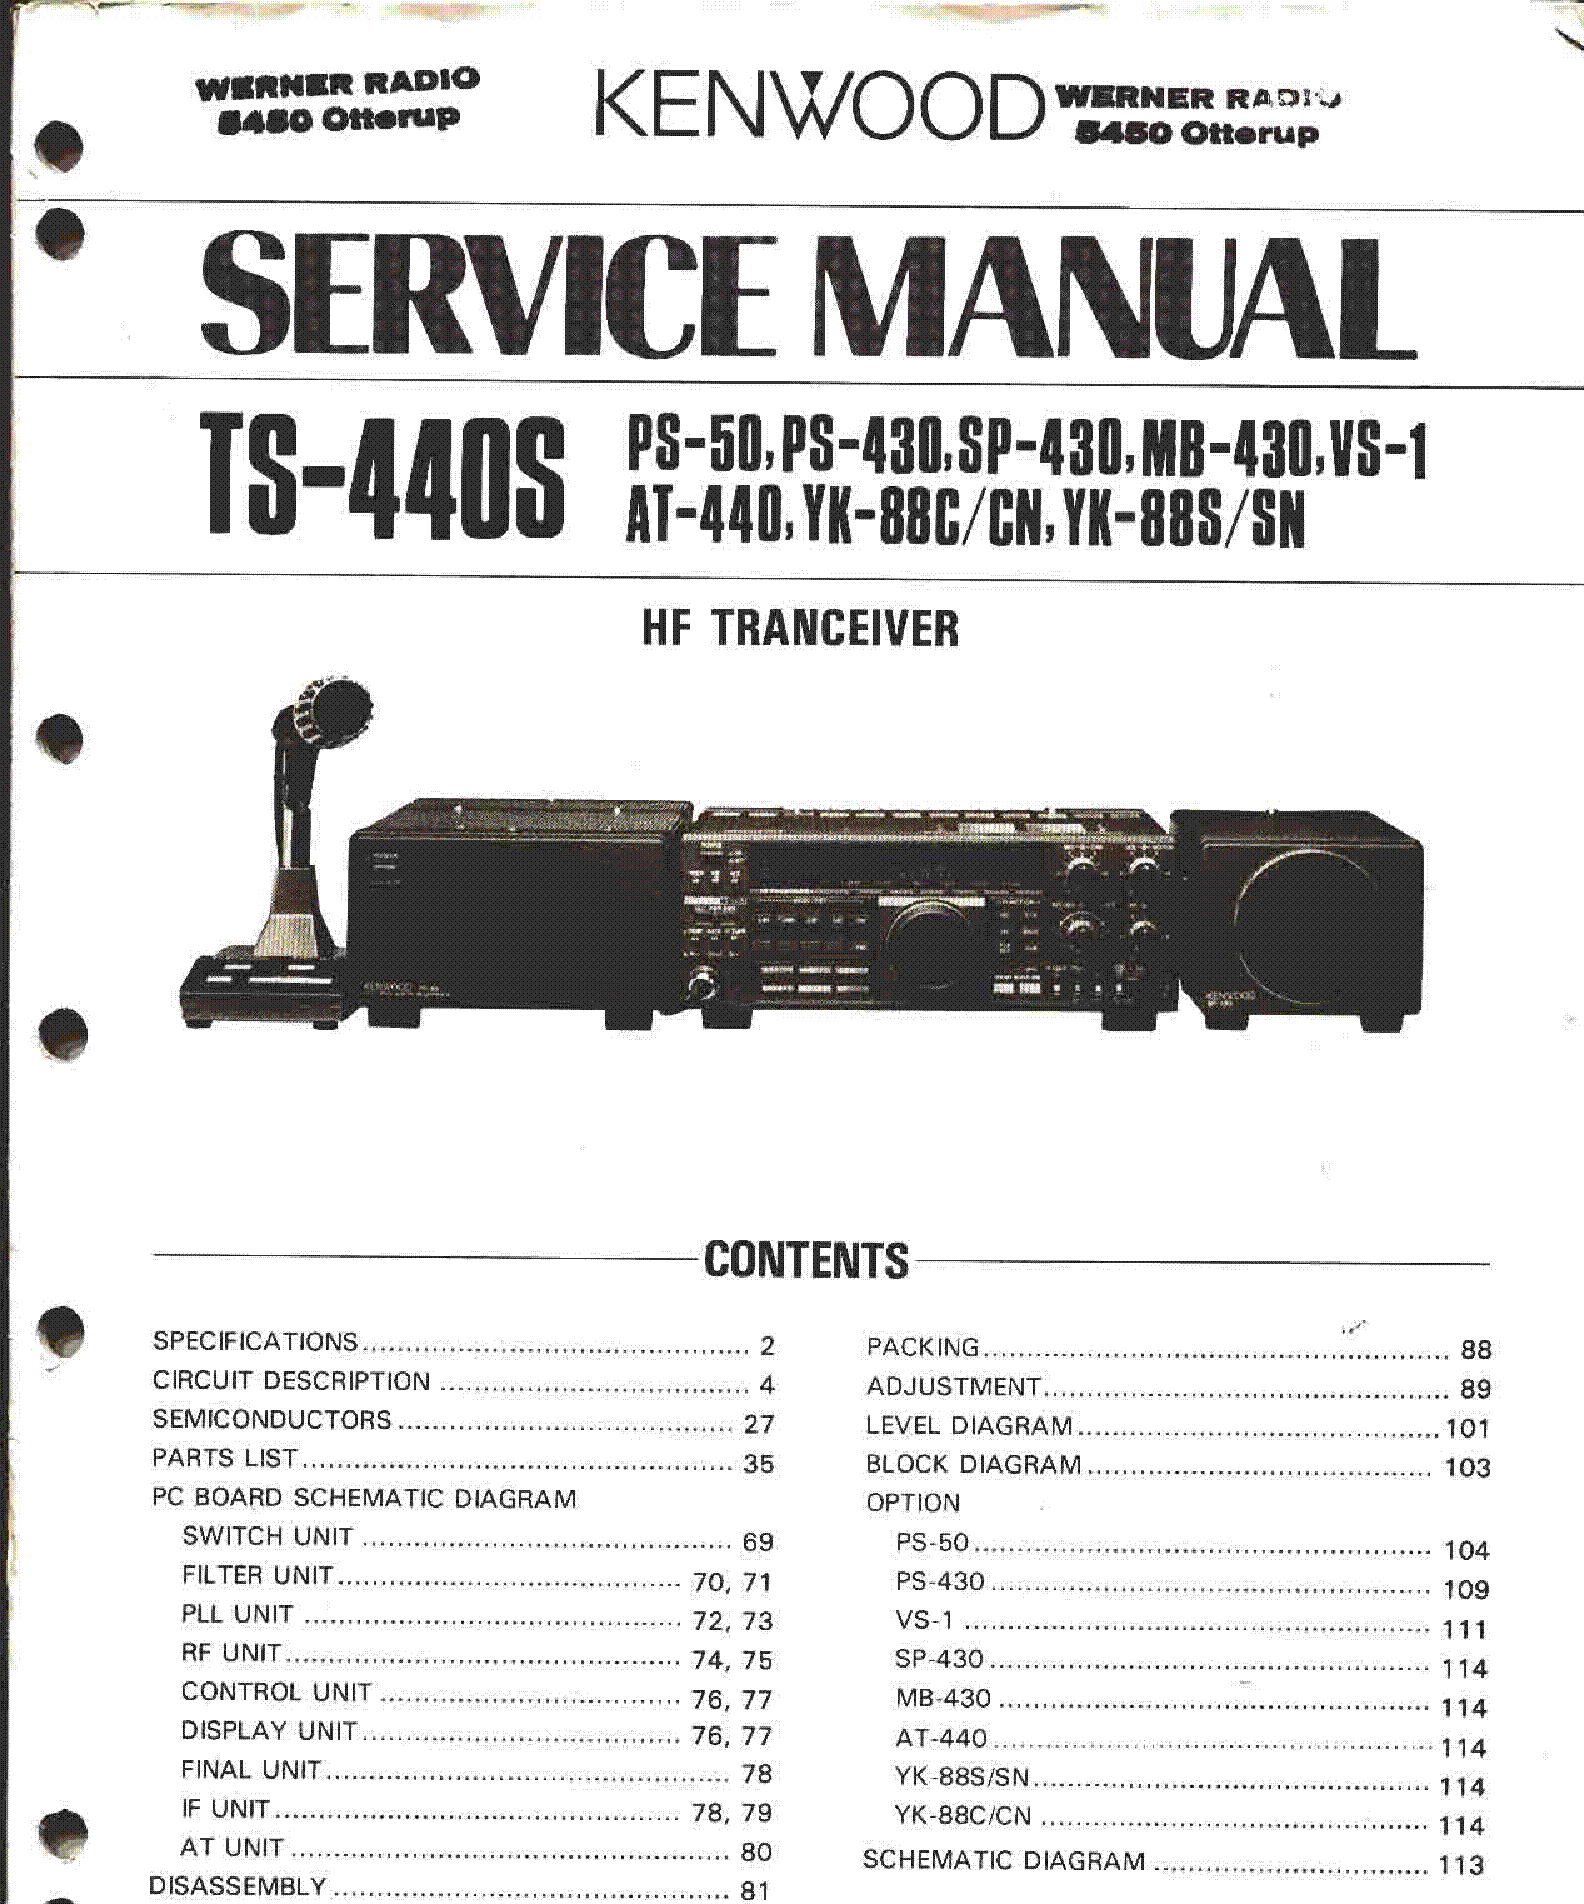 KENWOOD TS-440S service manual